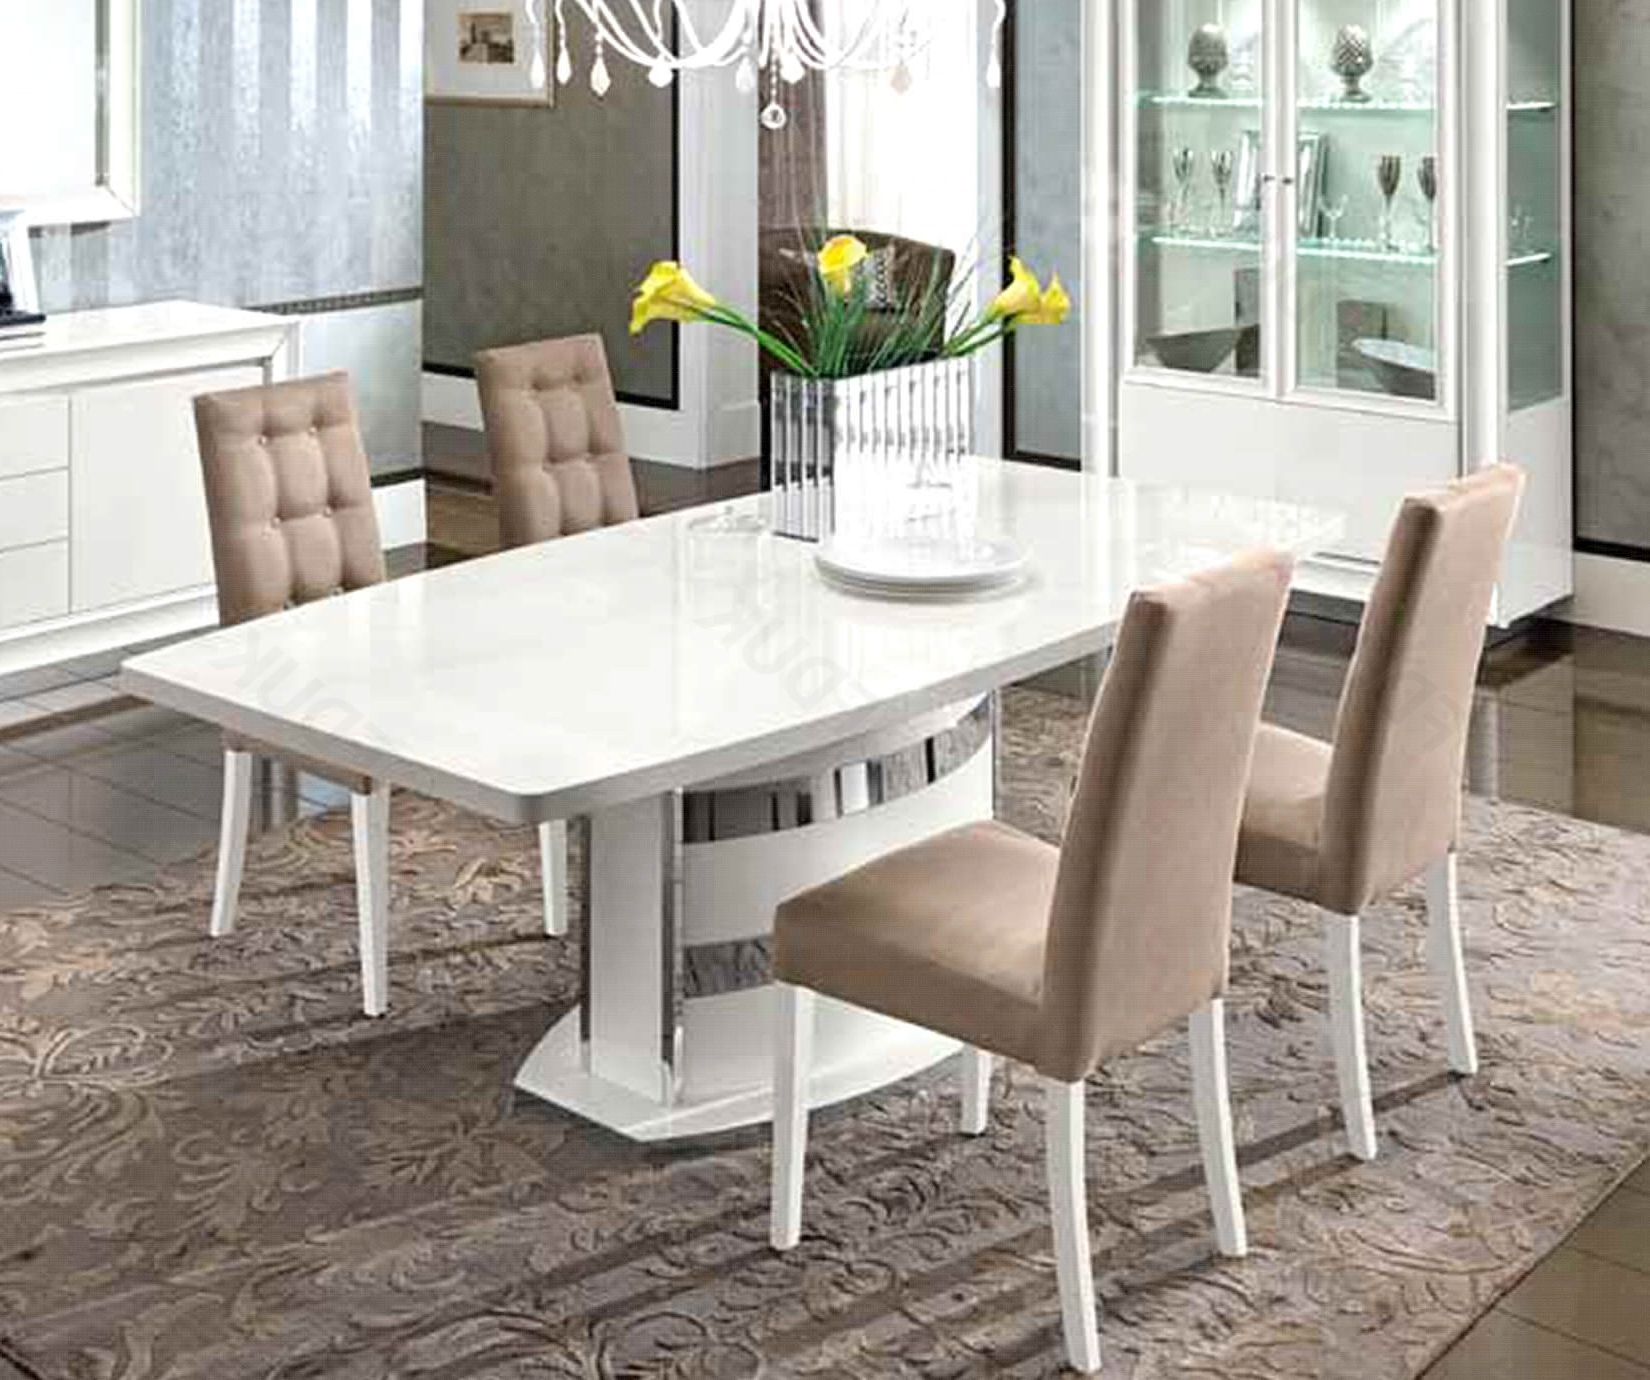 Recent Camel Group Dama Bianca White High Gloss Extending Dining Table Only Fduk  Best Price Guarantee We Will Beat Our Competitors Price! Give Our Sales  Team Throughout White Gloss Dining Room Furniture (View 14 of 25)